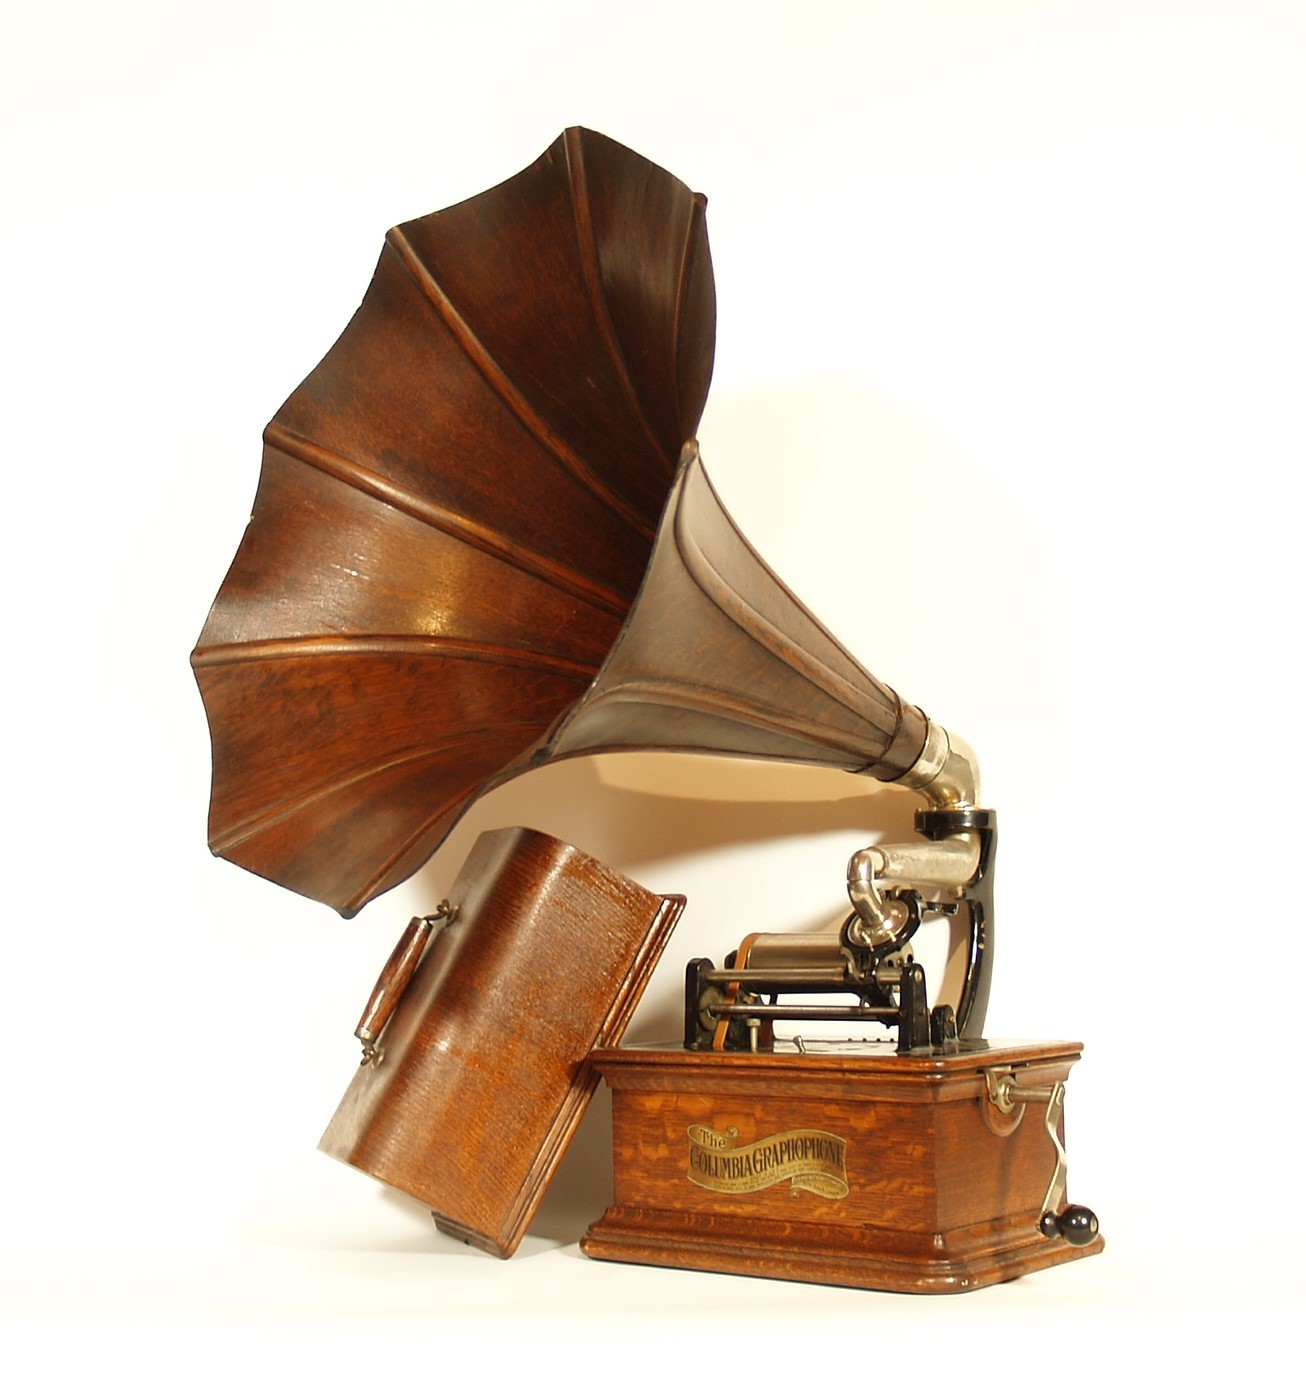 Columbia BKT with Early Scalloped Wood Horn